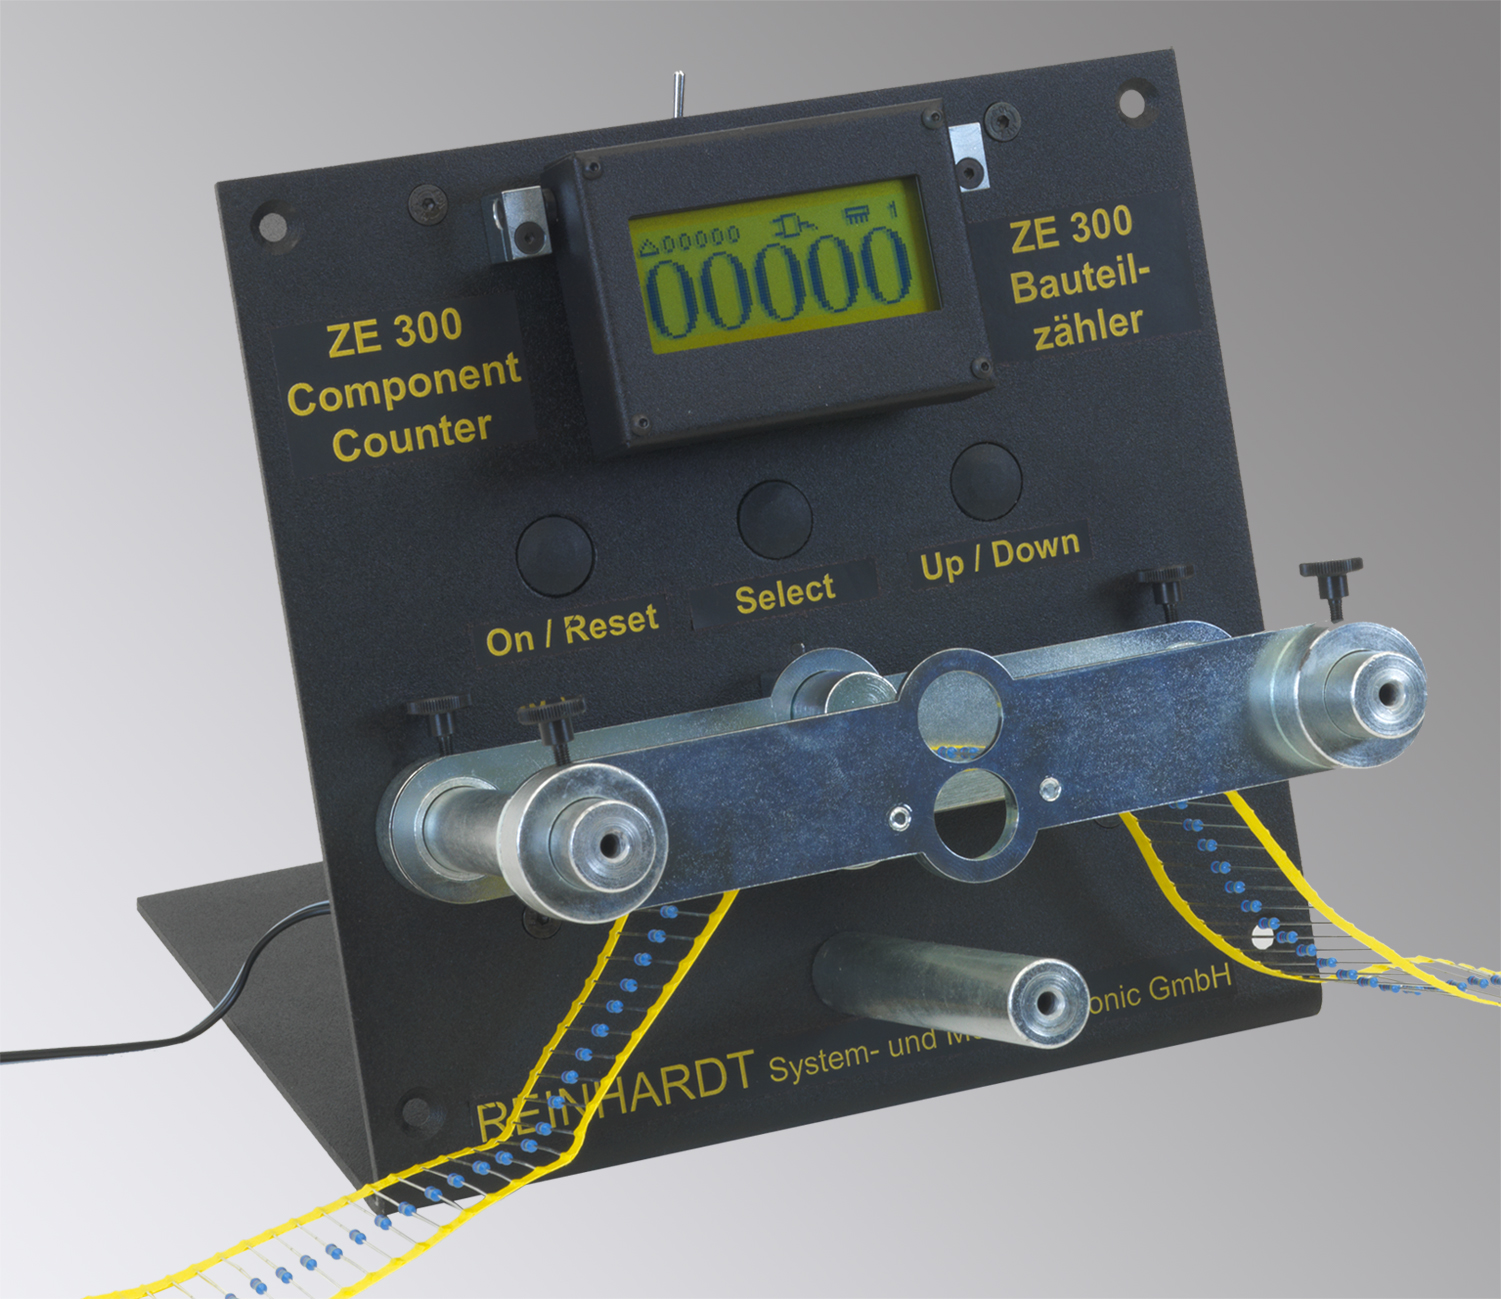 Compact Fast And Precise In Circuit Function Test System Free Shipping Integrated Tester Transistor Ic Testin New Electronic Component Counter Ze 300 Uses Laser Technology